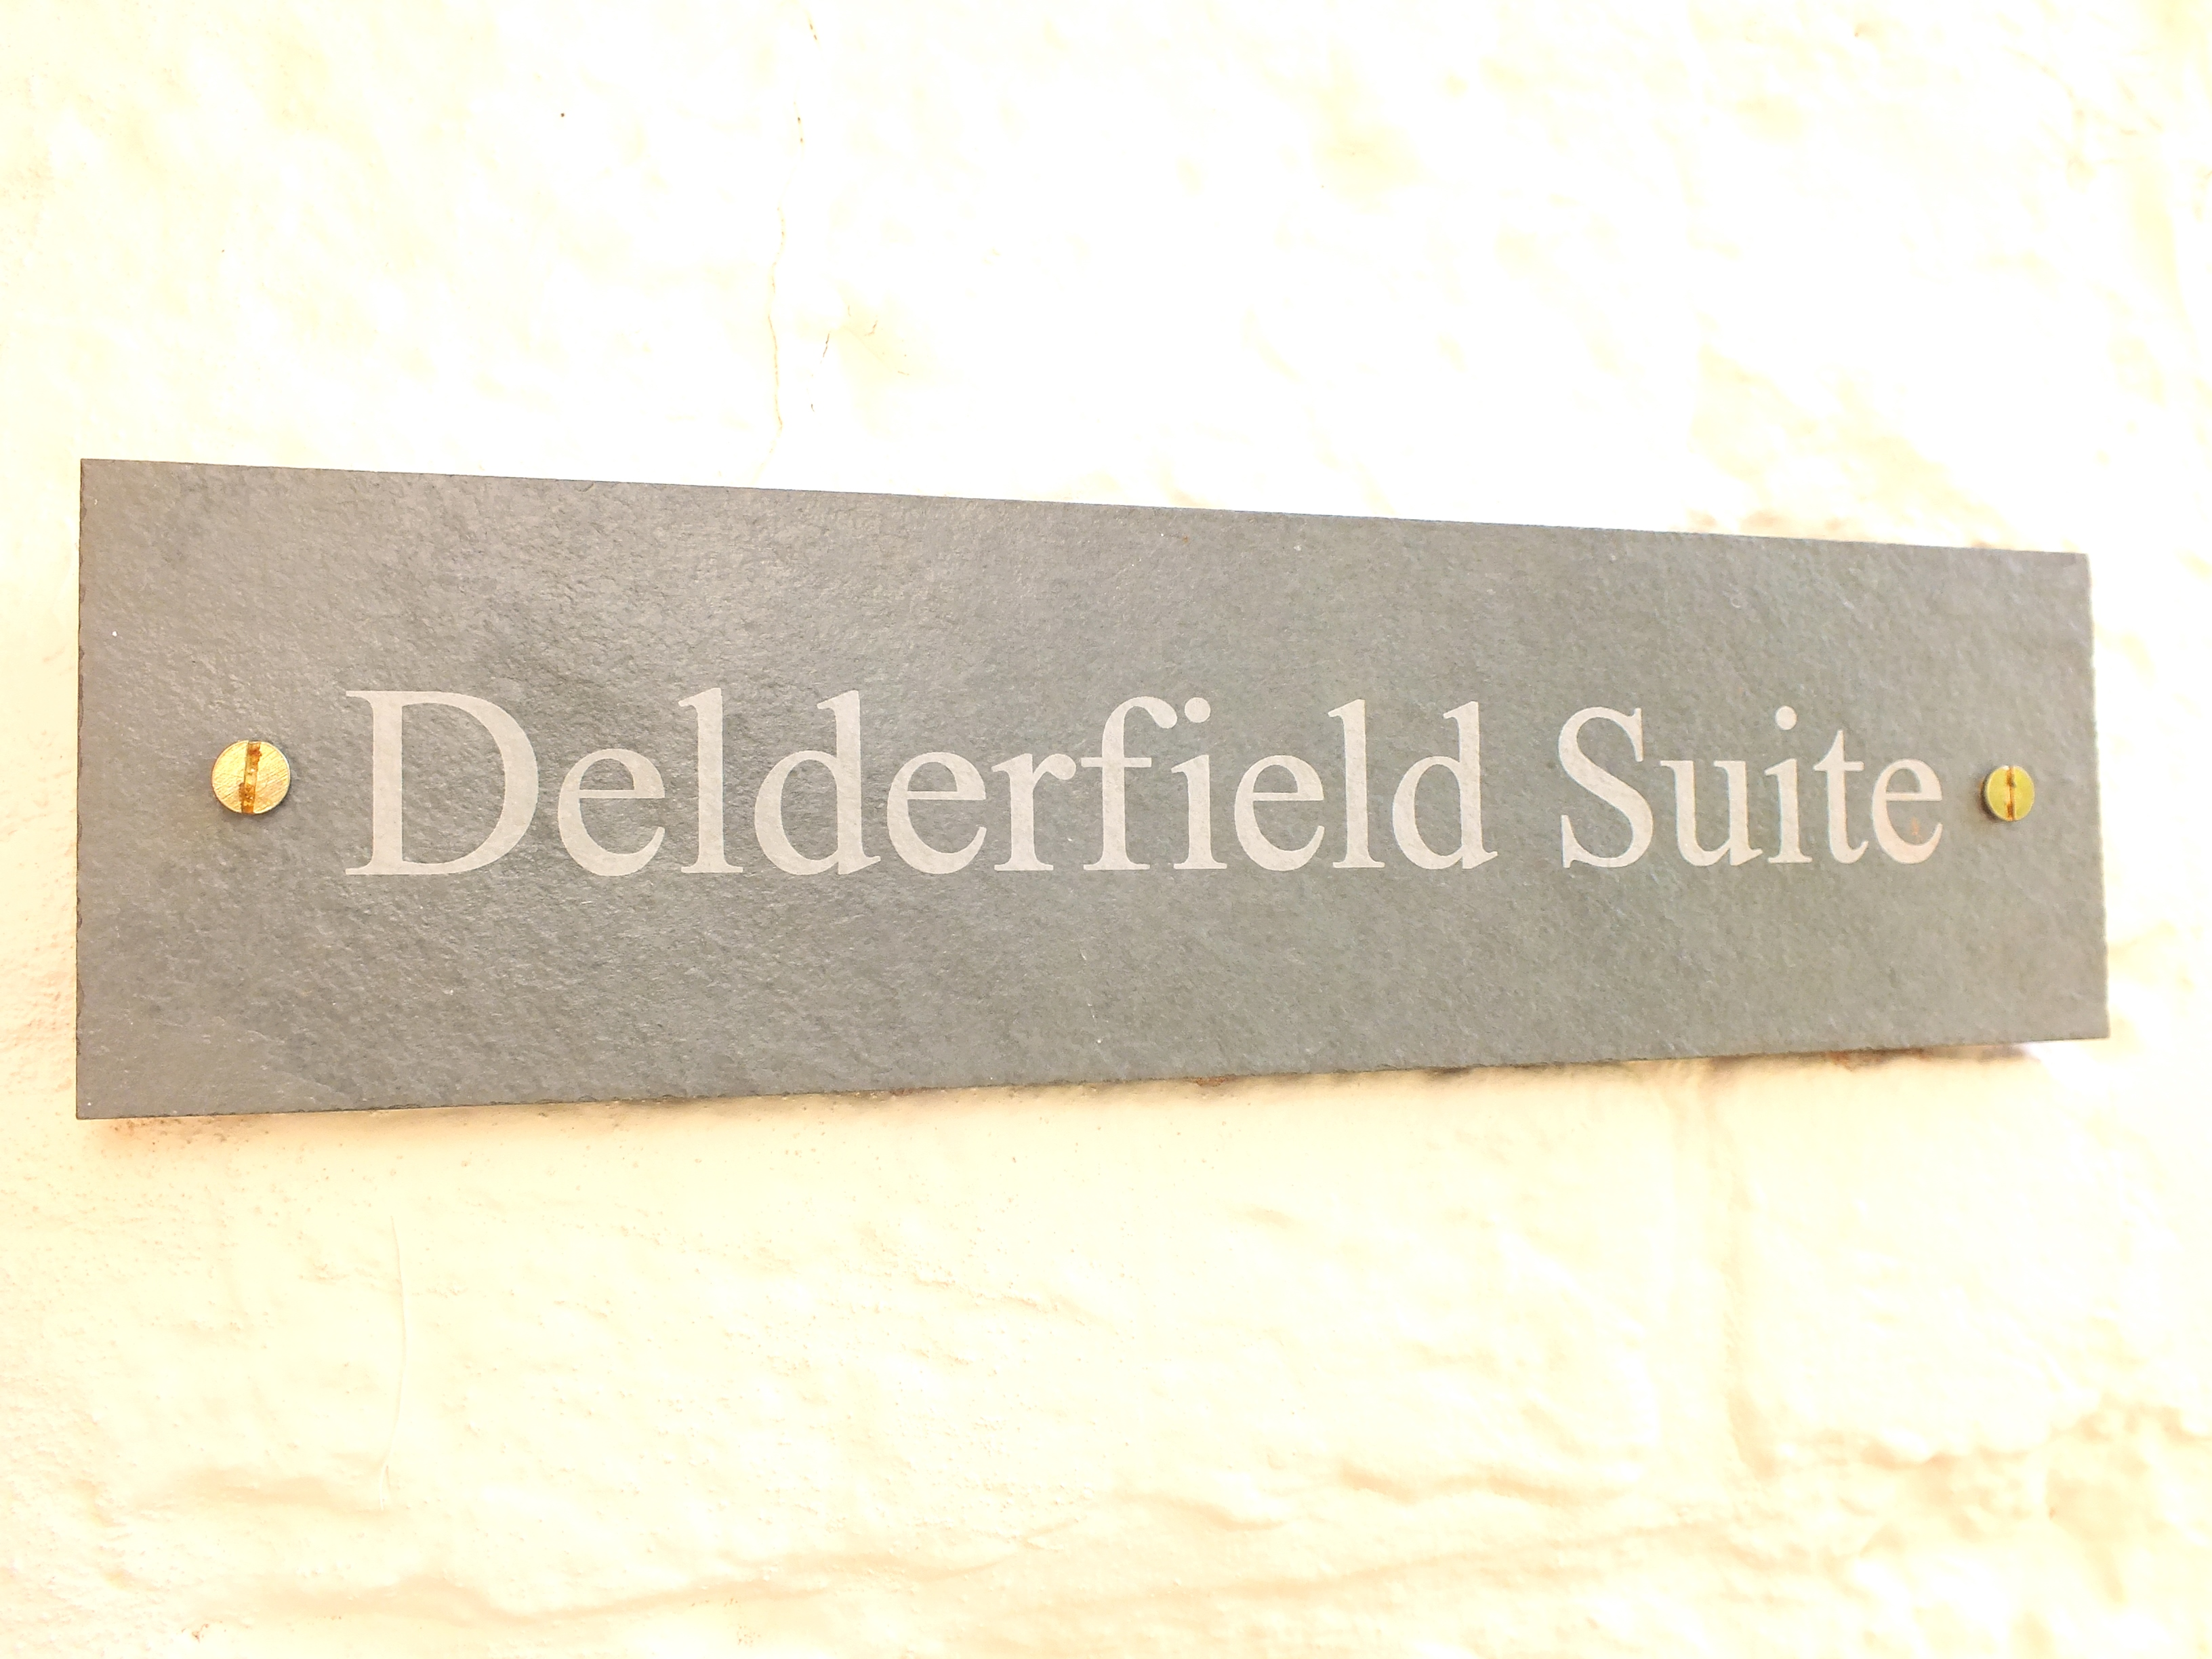 The Delderfield Suite